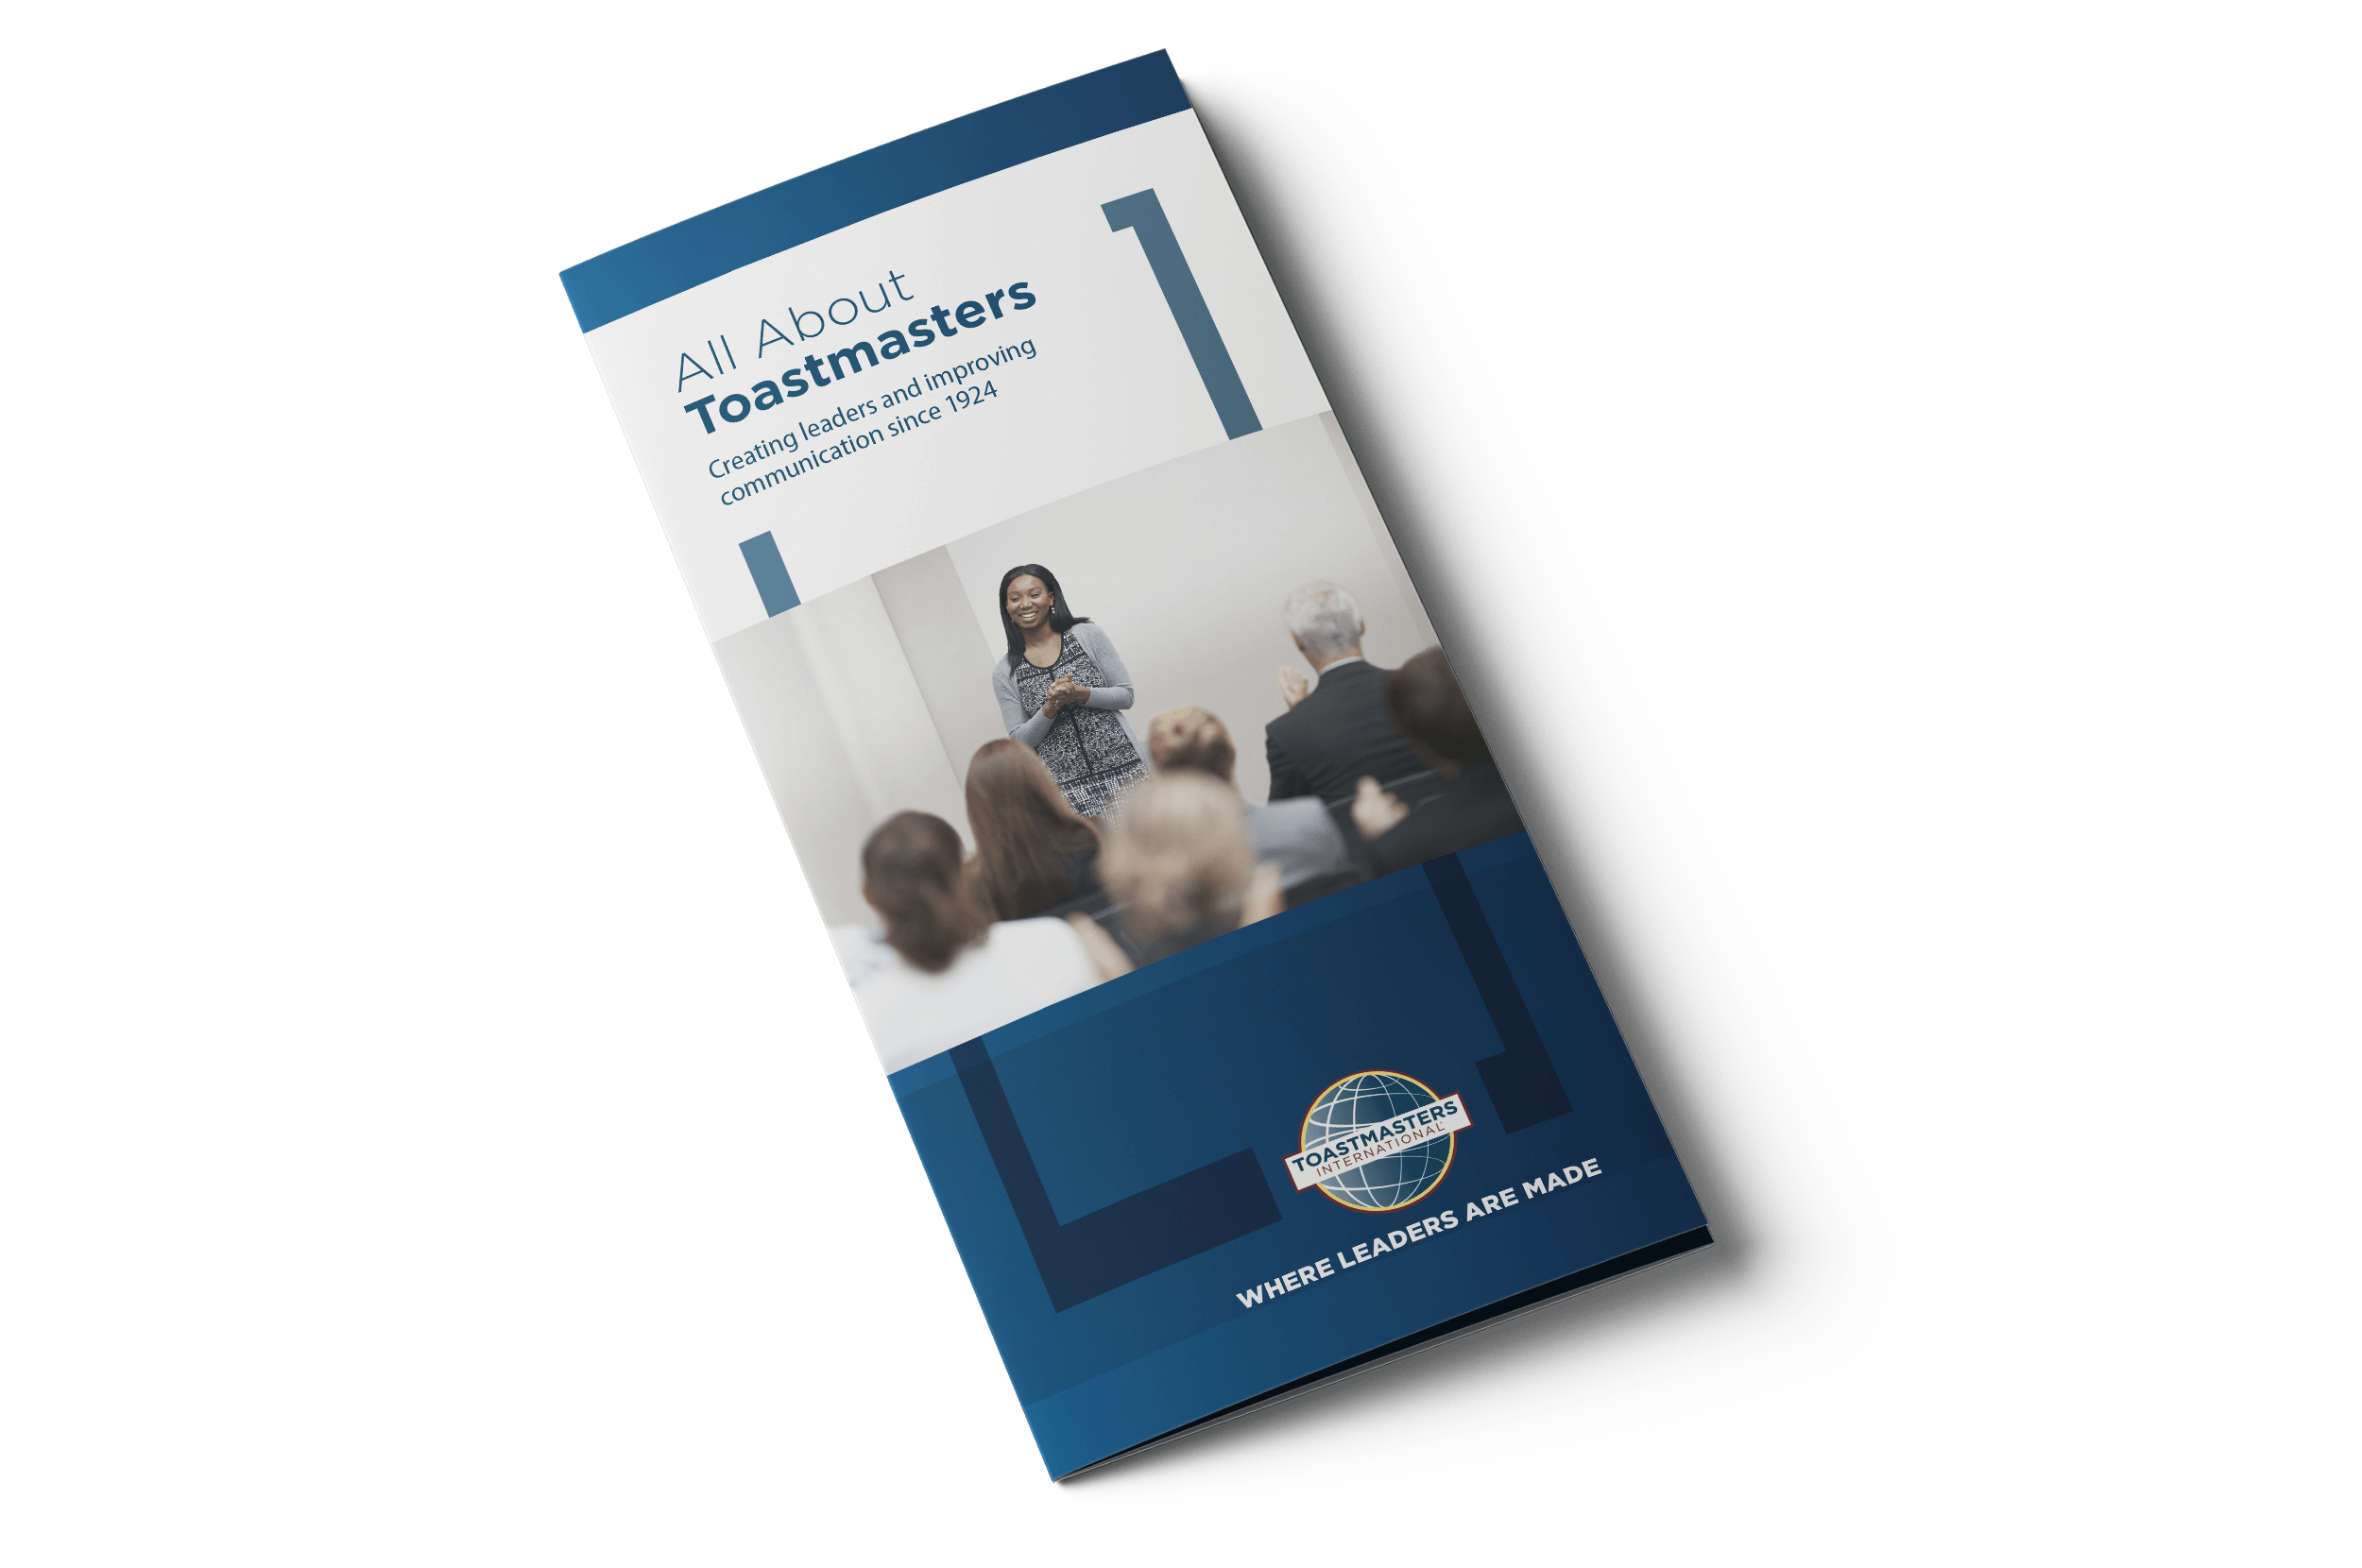 All About Toastmasters Brochure